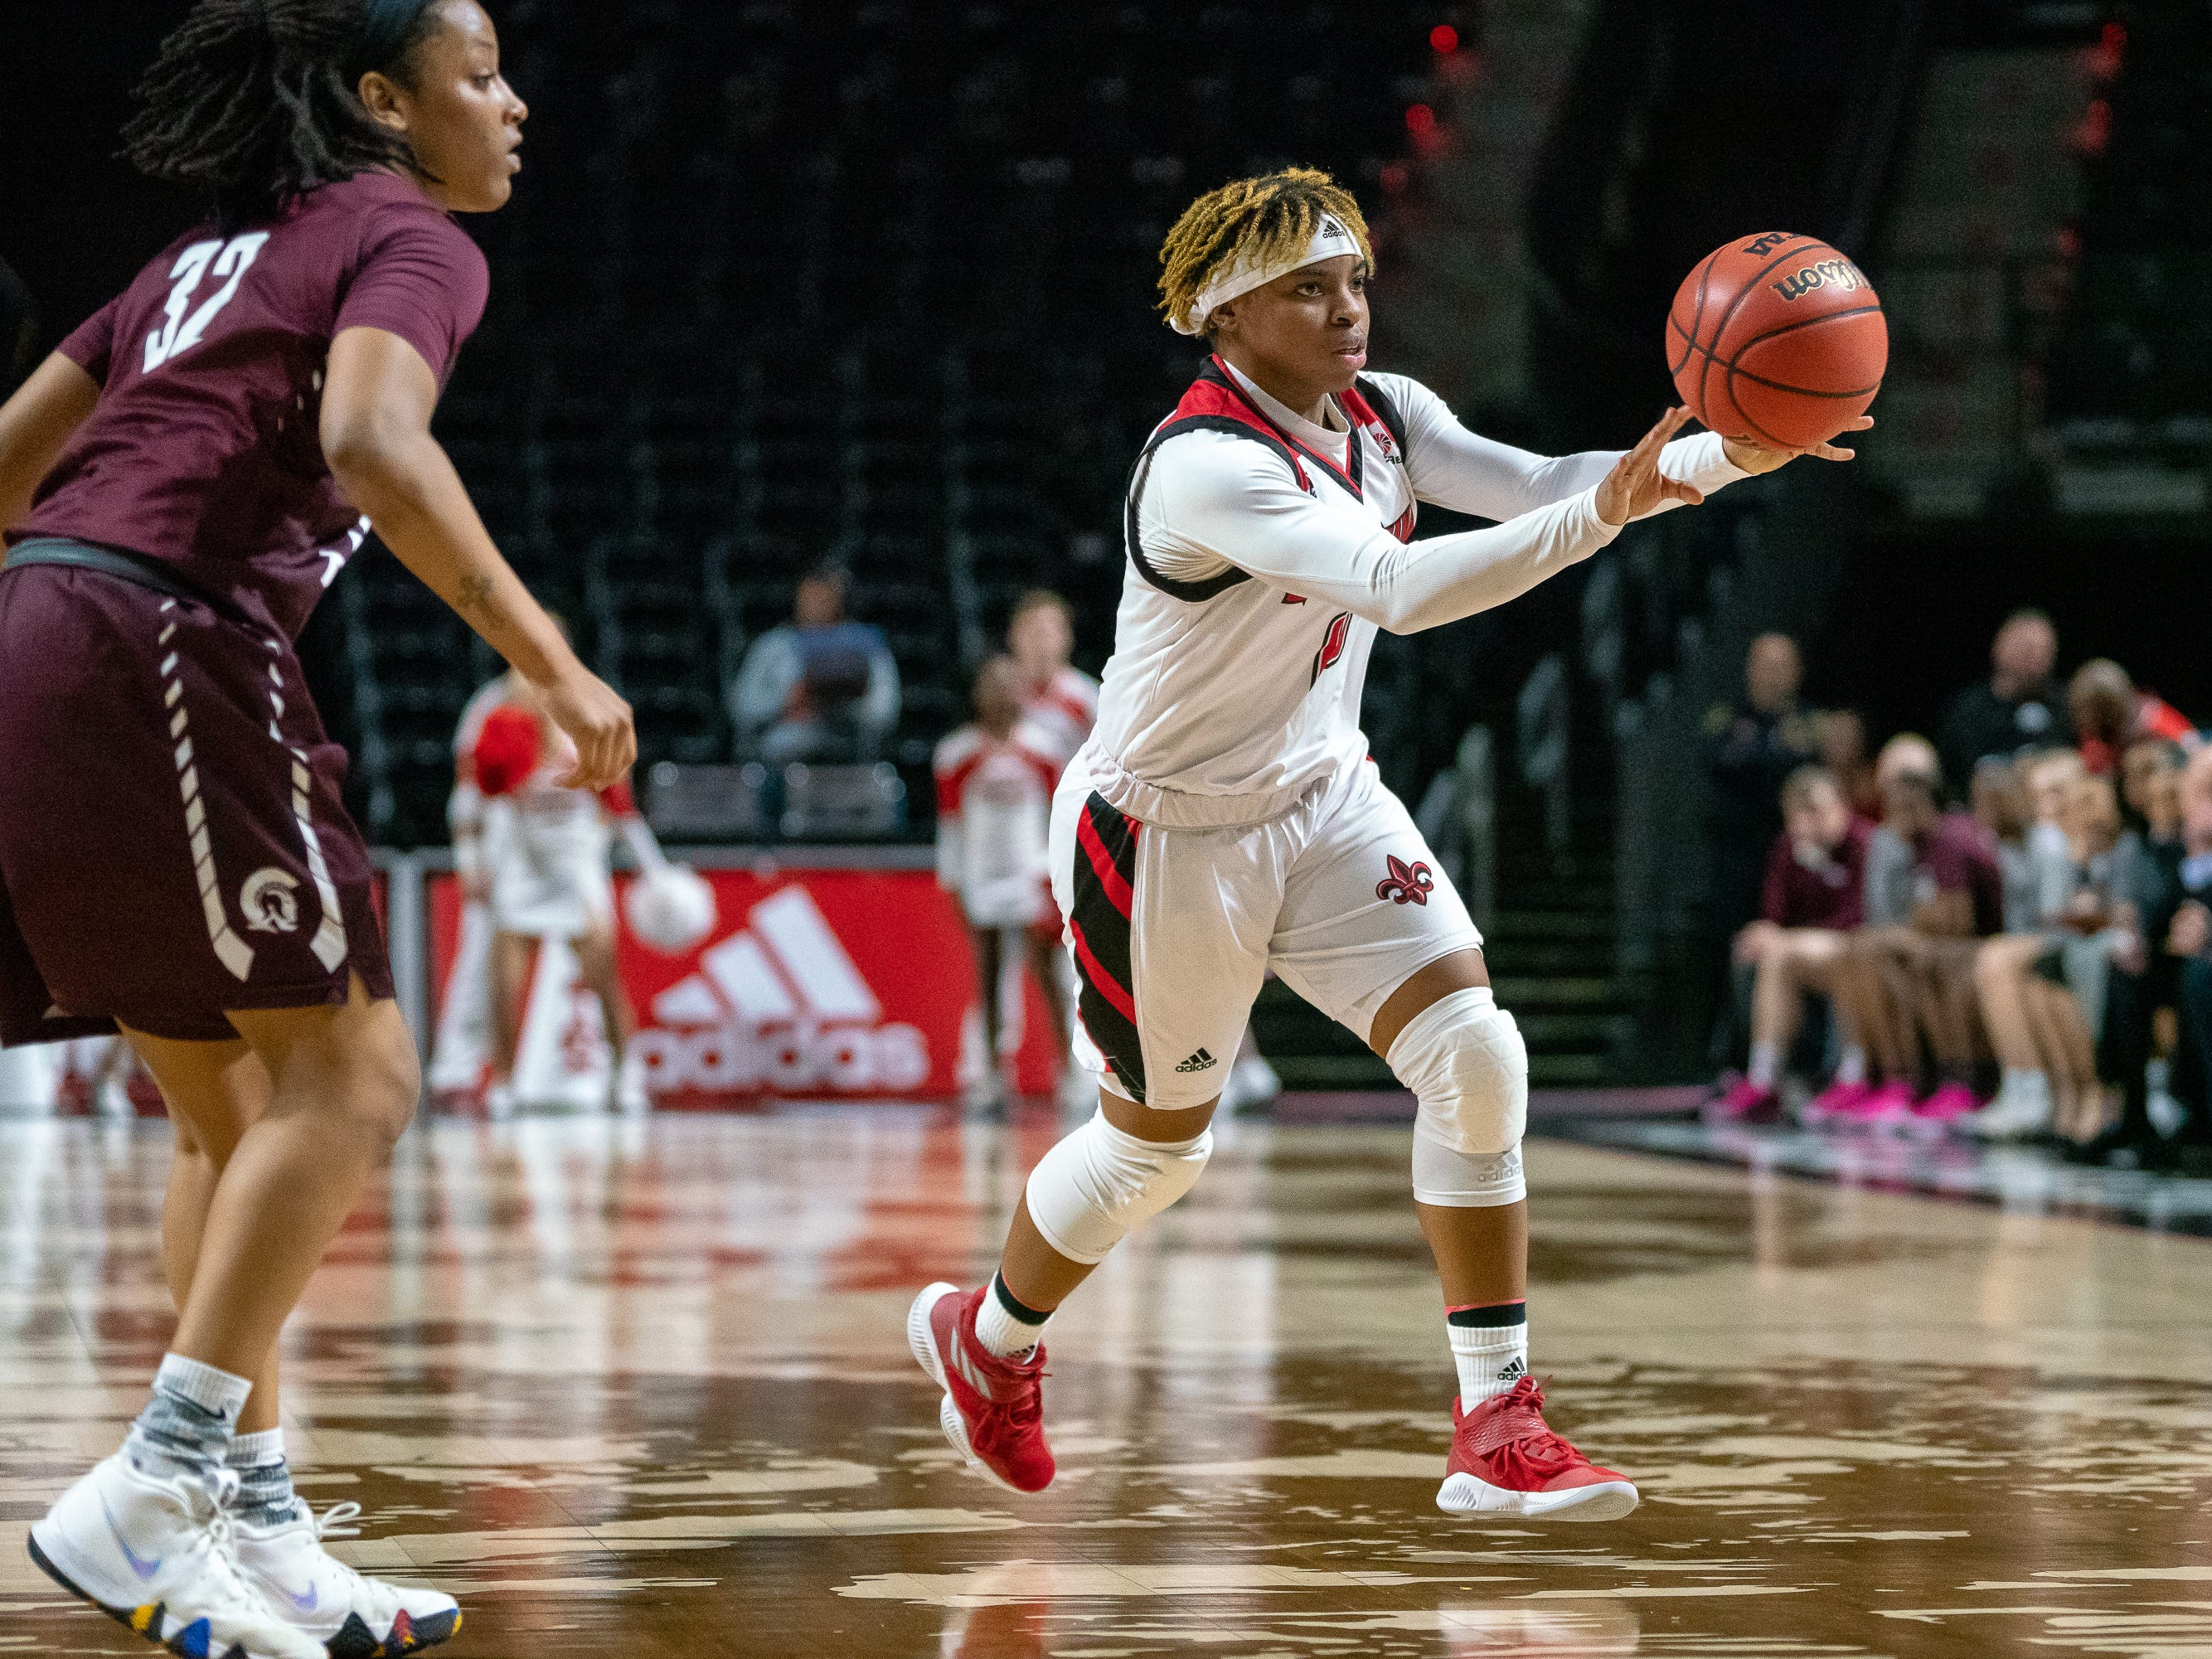 UL's Diamond Morrison throws a pass to a teammate as the Ragin' Cajuns take on the Little Rock Trojans at the Cajundome on Thursday, March 7, 2019.